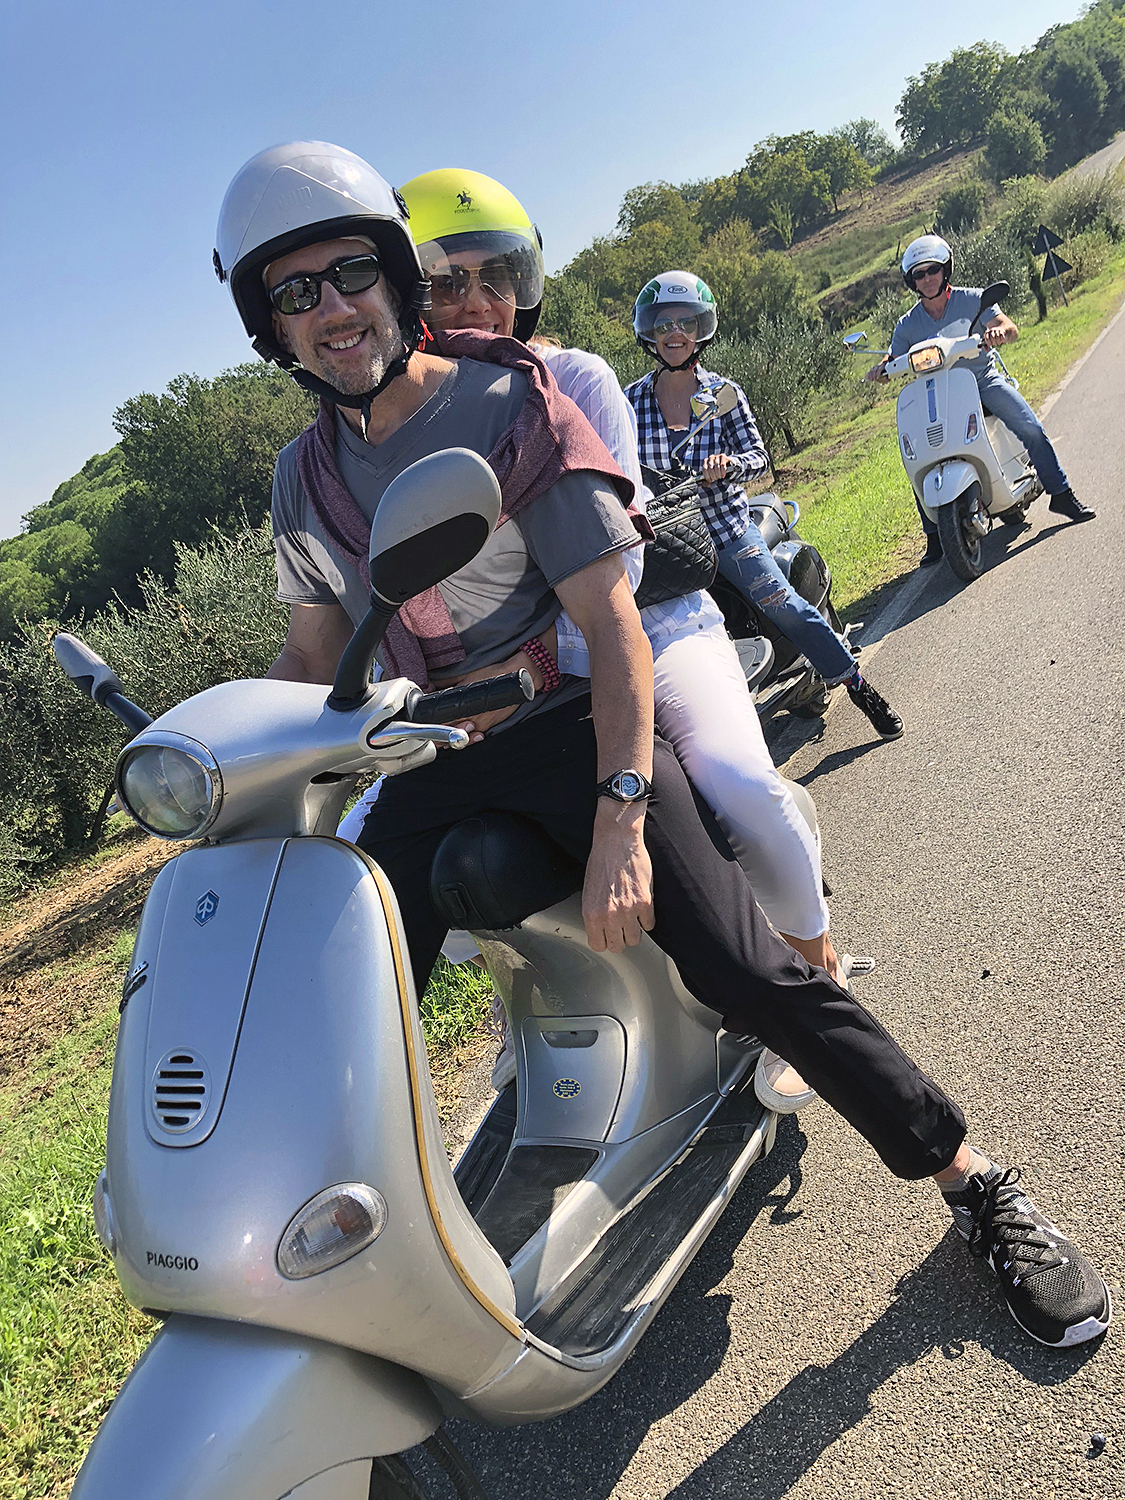 2018 ITALY_firenze_chianti_scooters_ted_lisa_sara_dave.jpg